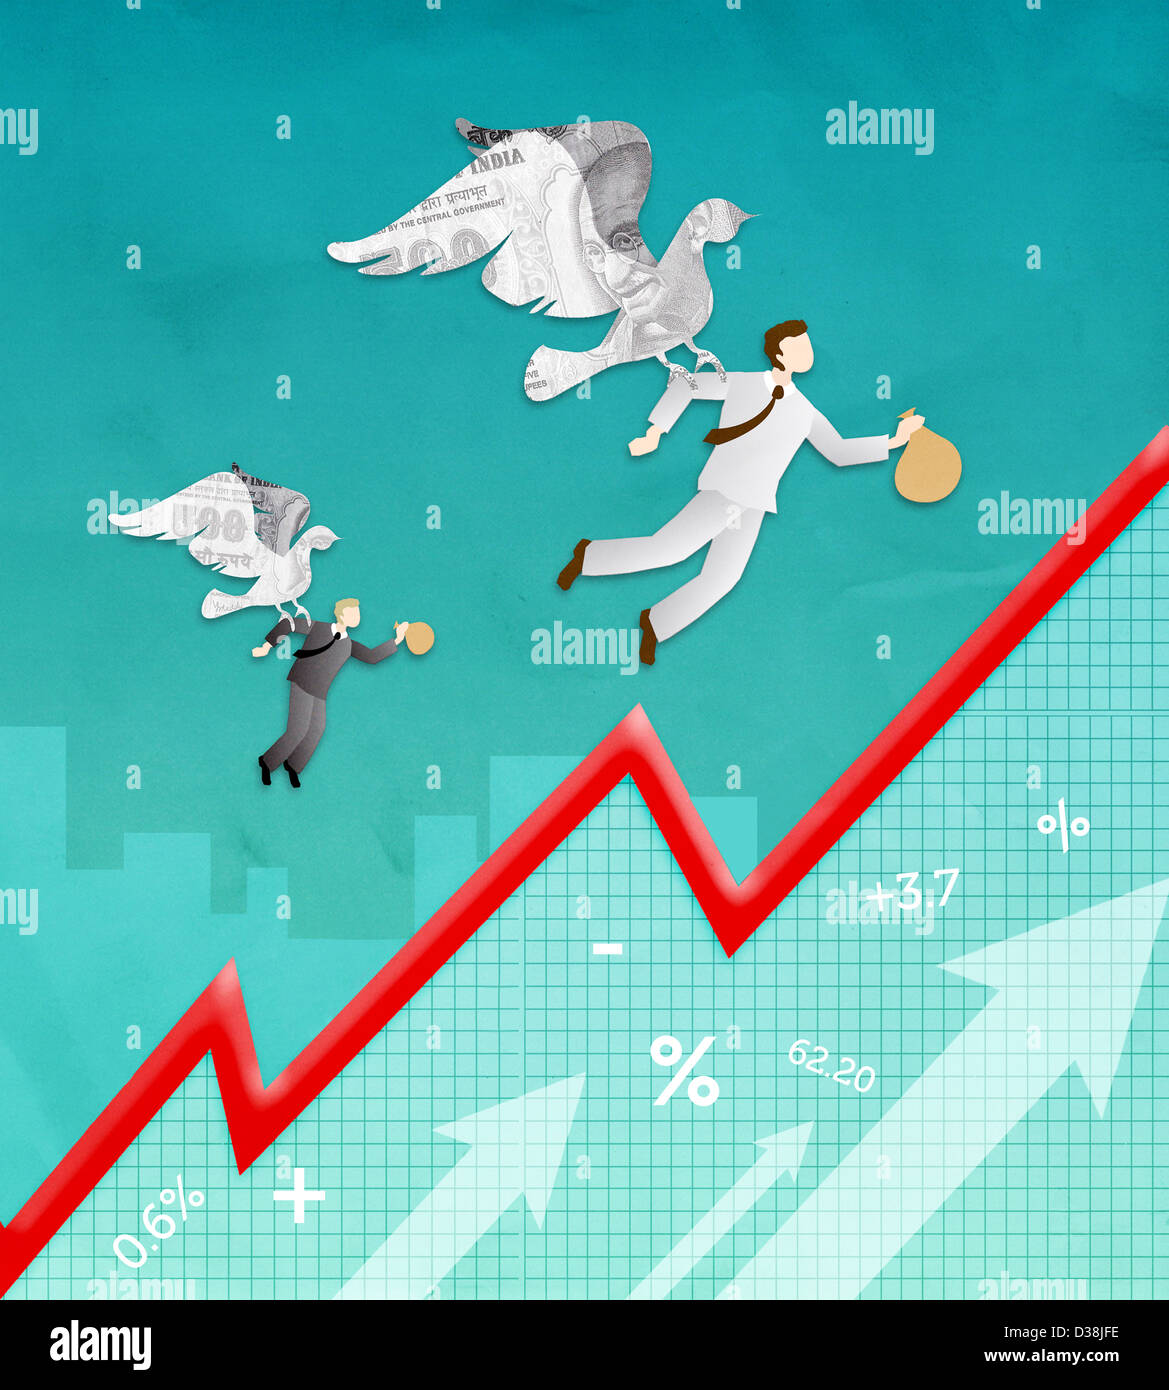 Illustrative representation showing recovery from recession - Stock Image